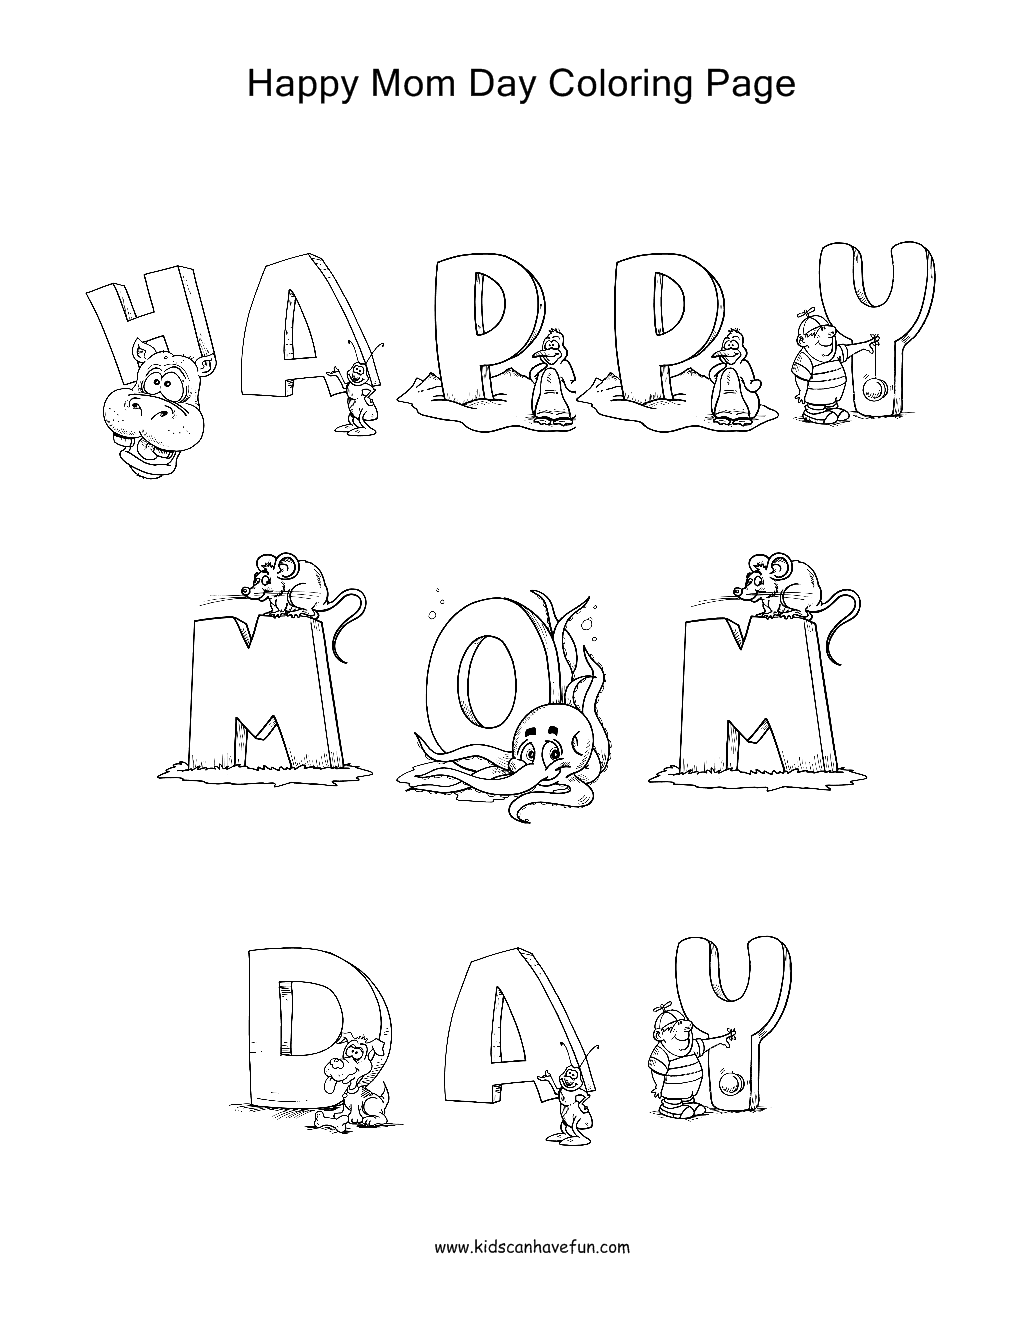 Happy mothers day coloring pages coloring picutres for Mothers day coloring pages religious